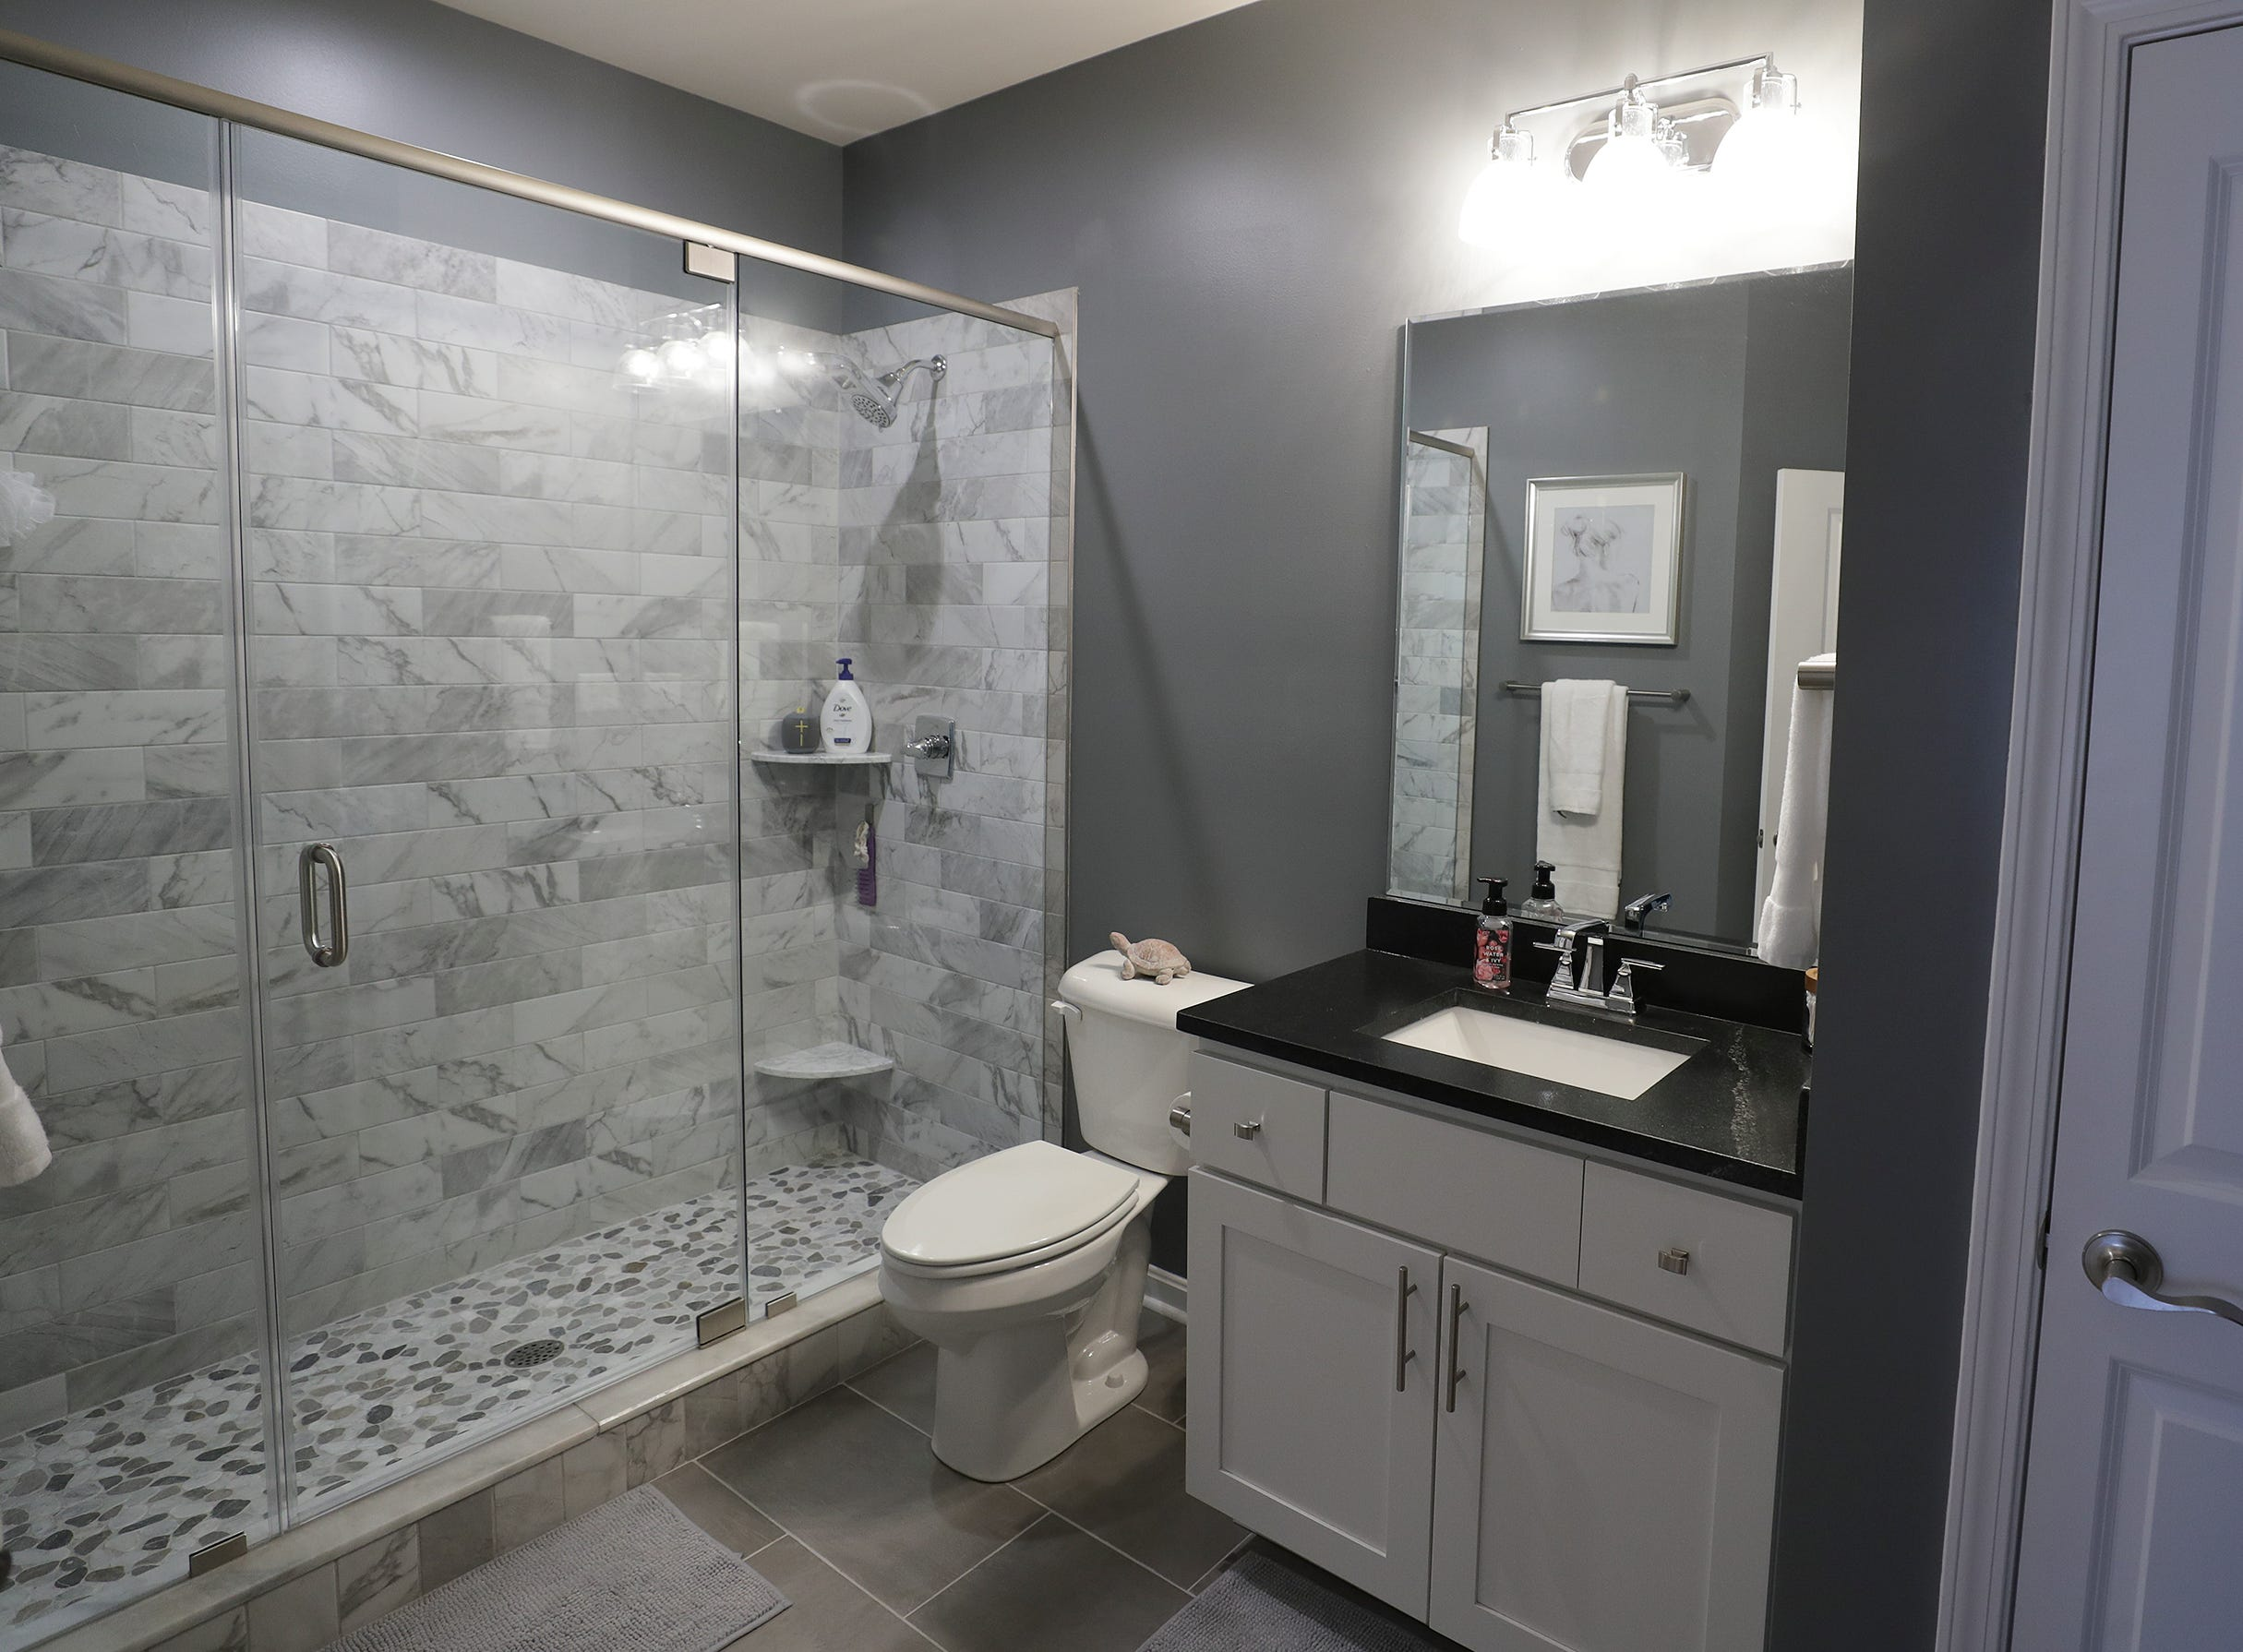 Guest bathroom in the home of Michael and Andria Triplett.